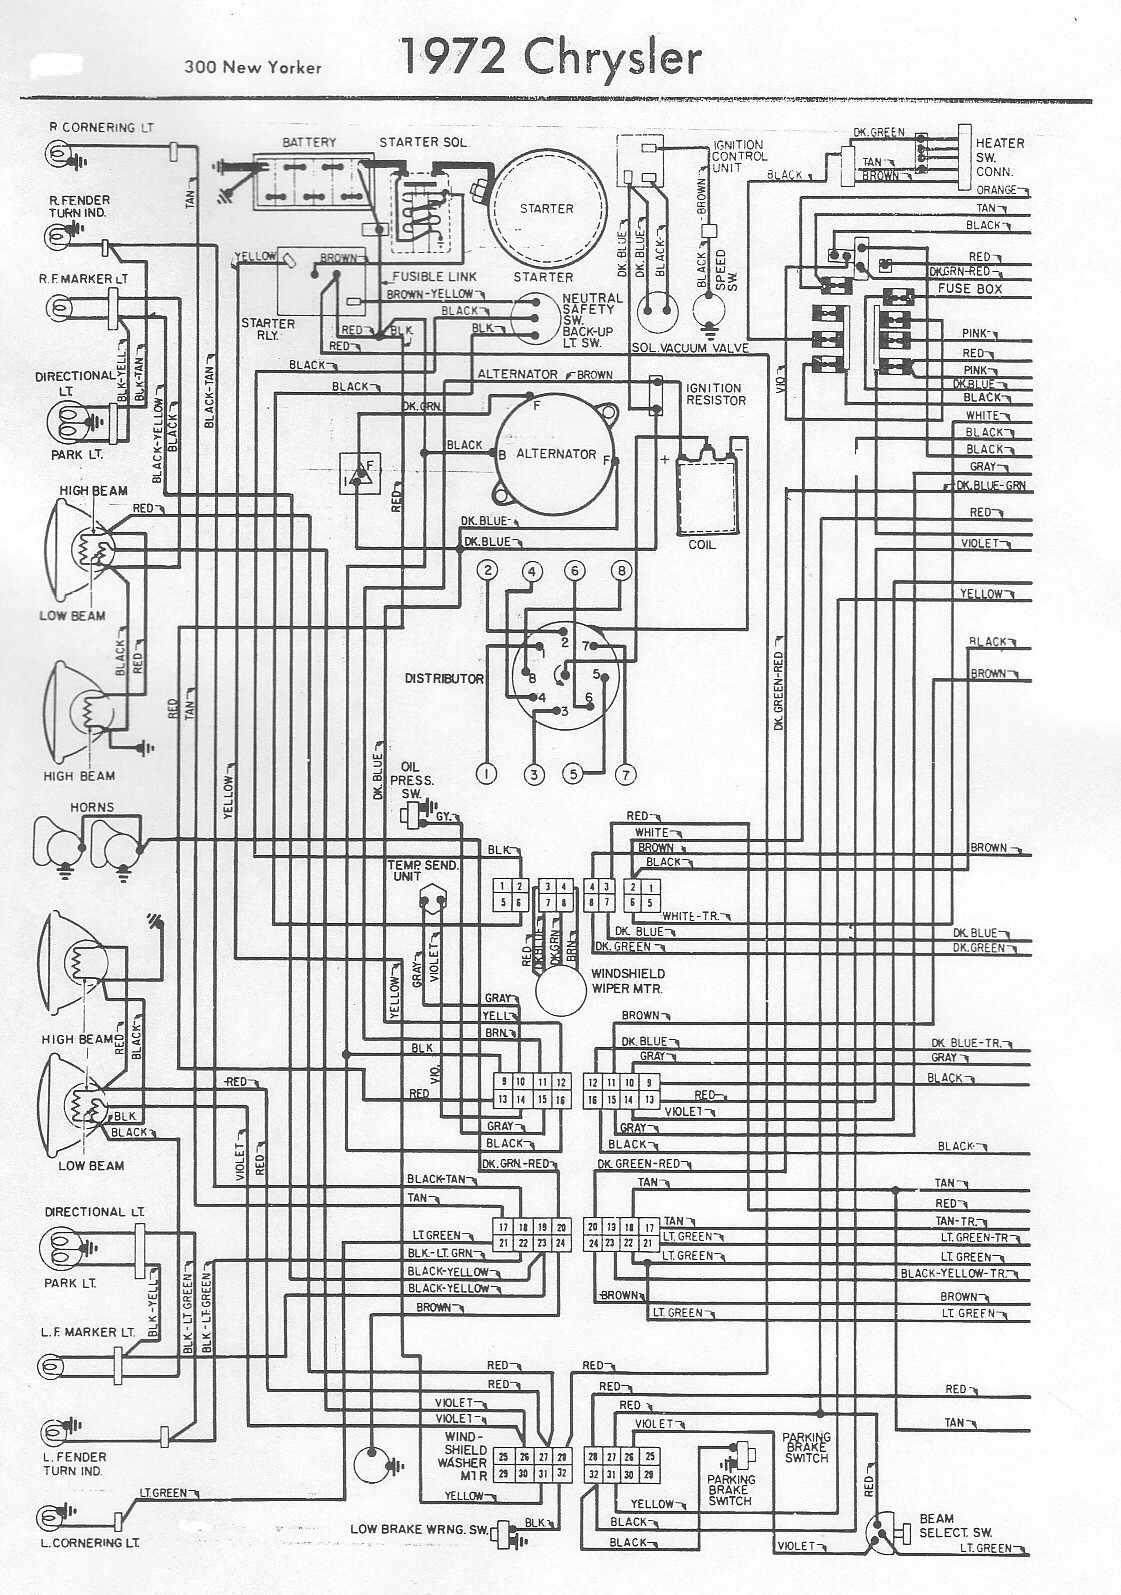 Fuse Box 1992 Chrysler New Yorker Detailed Schematics Diagram Mercedes Benz E300 Wiring U2022 For Free 1968